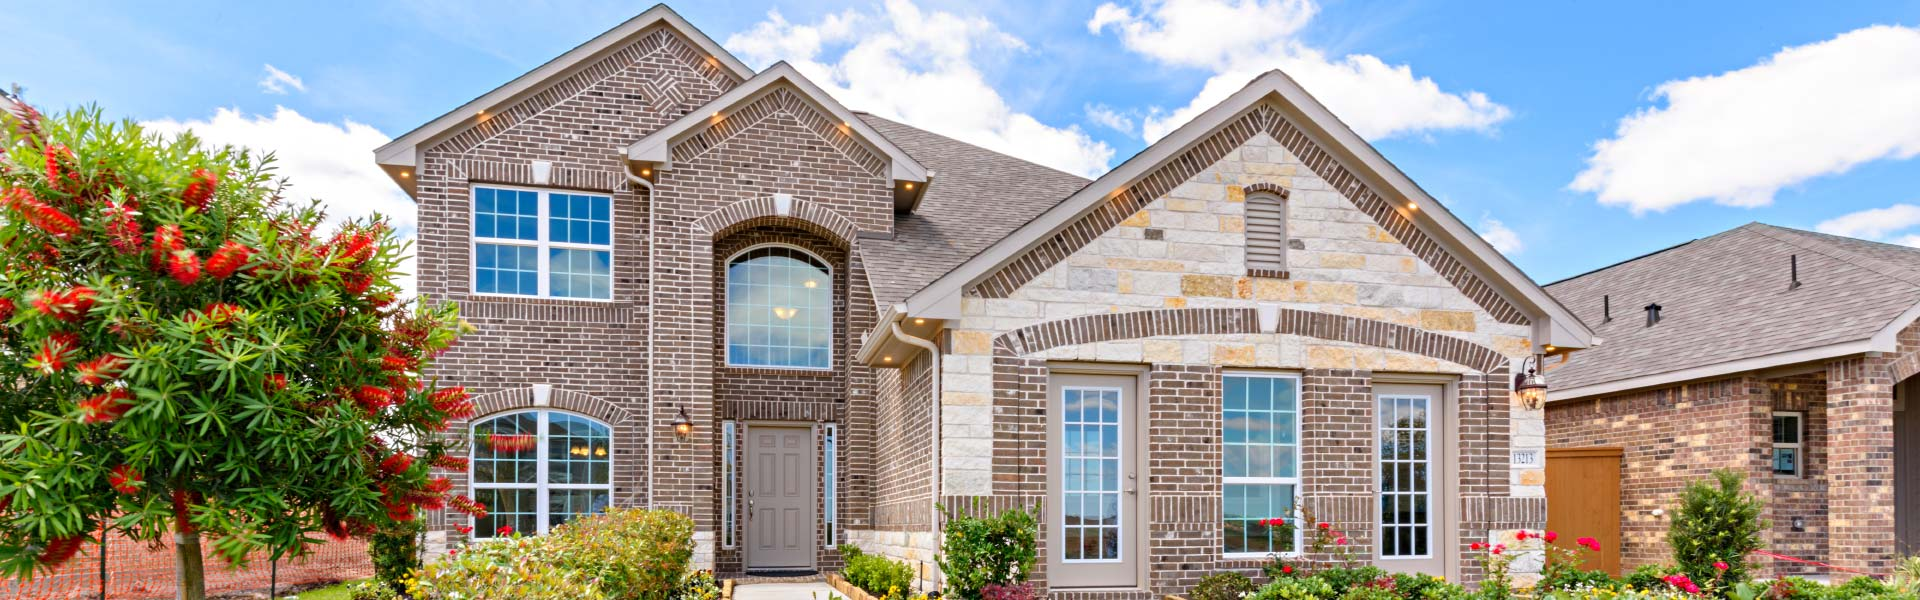 New Home Builders In Houston Tx Anglia Homes Lp